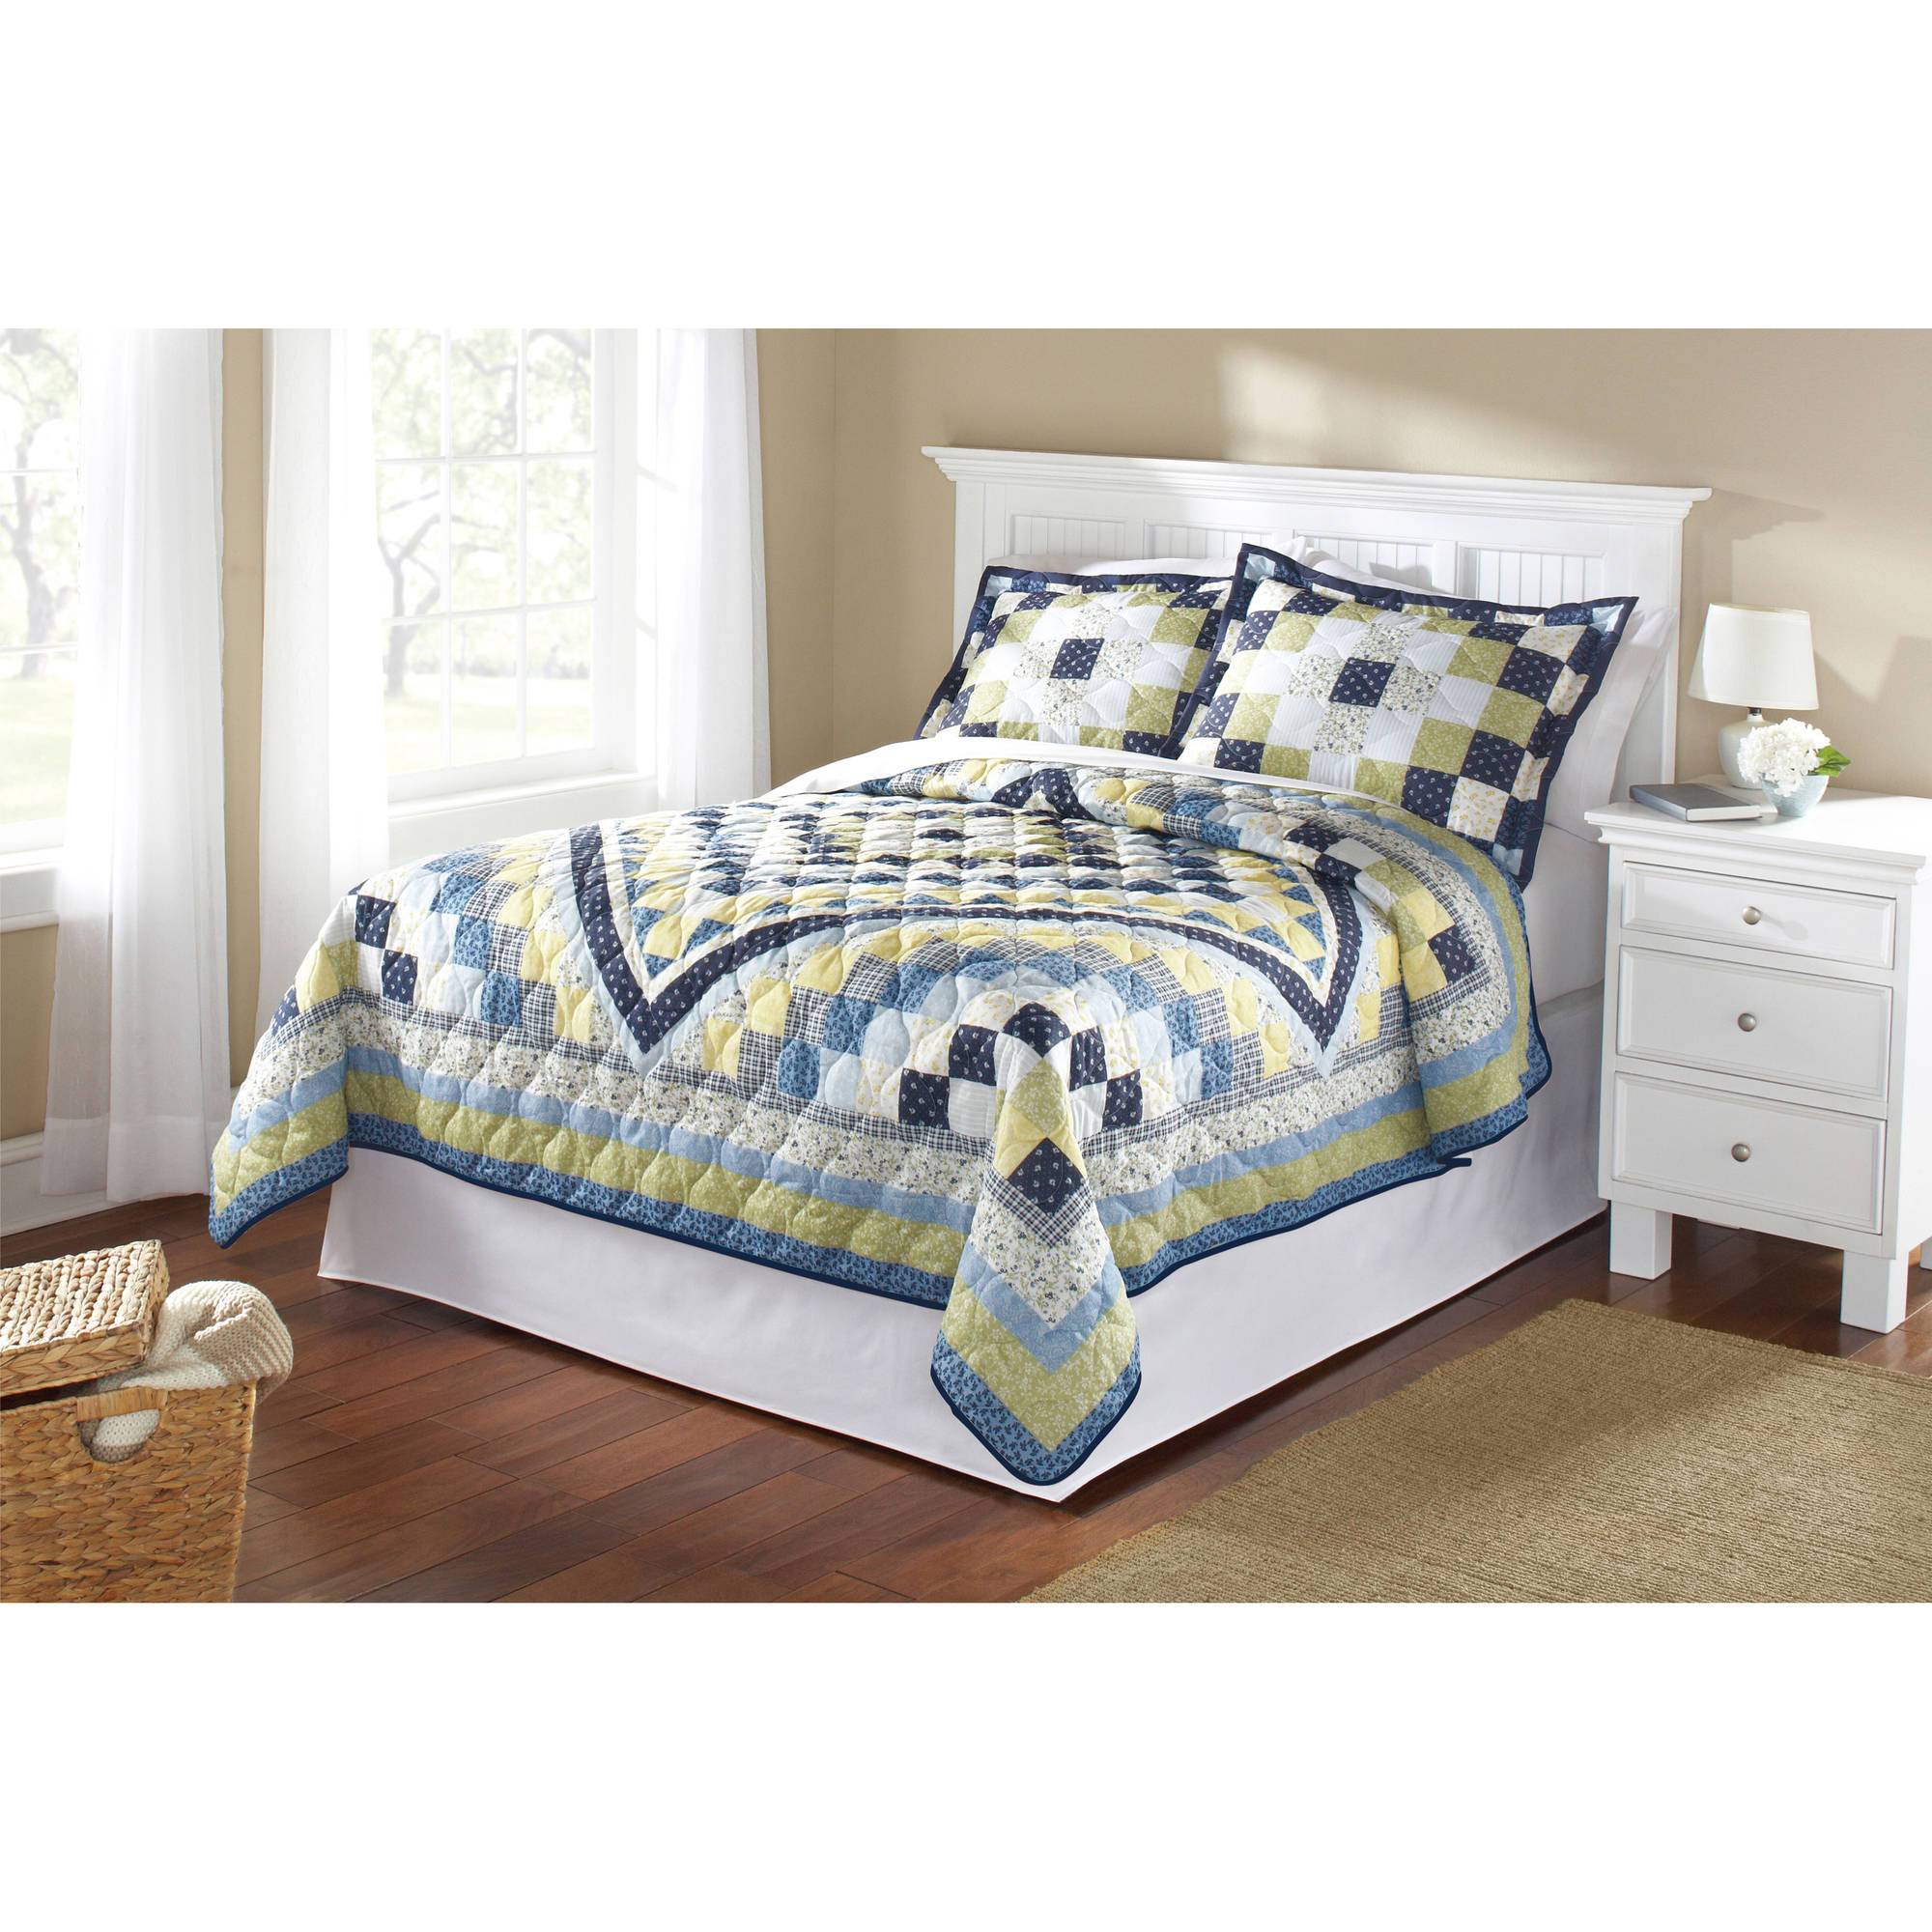 Mainstays Blue Patchwork Quilt